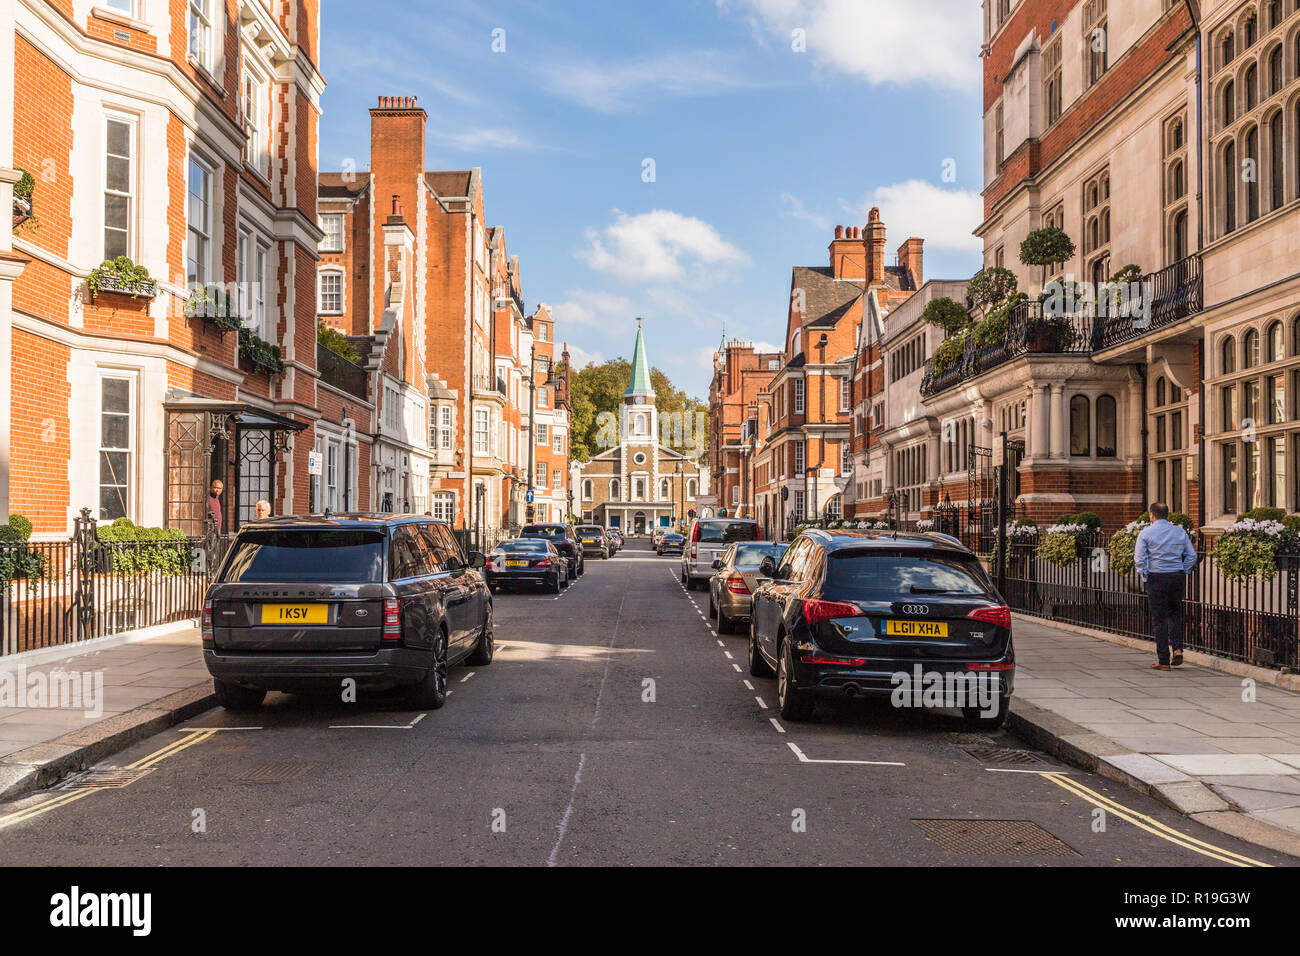 A typical view in Mayfair - Stock Image